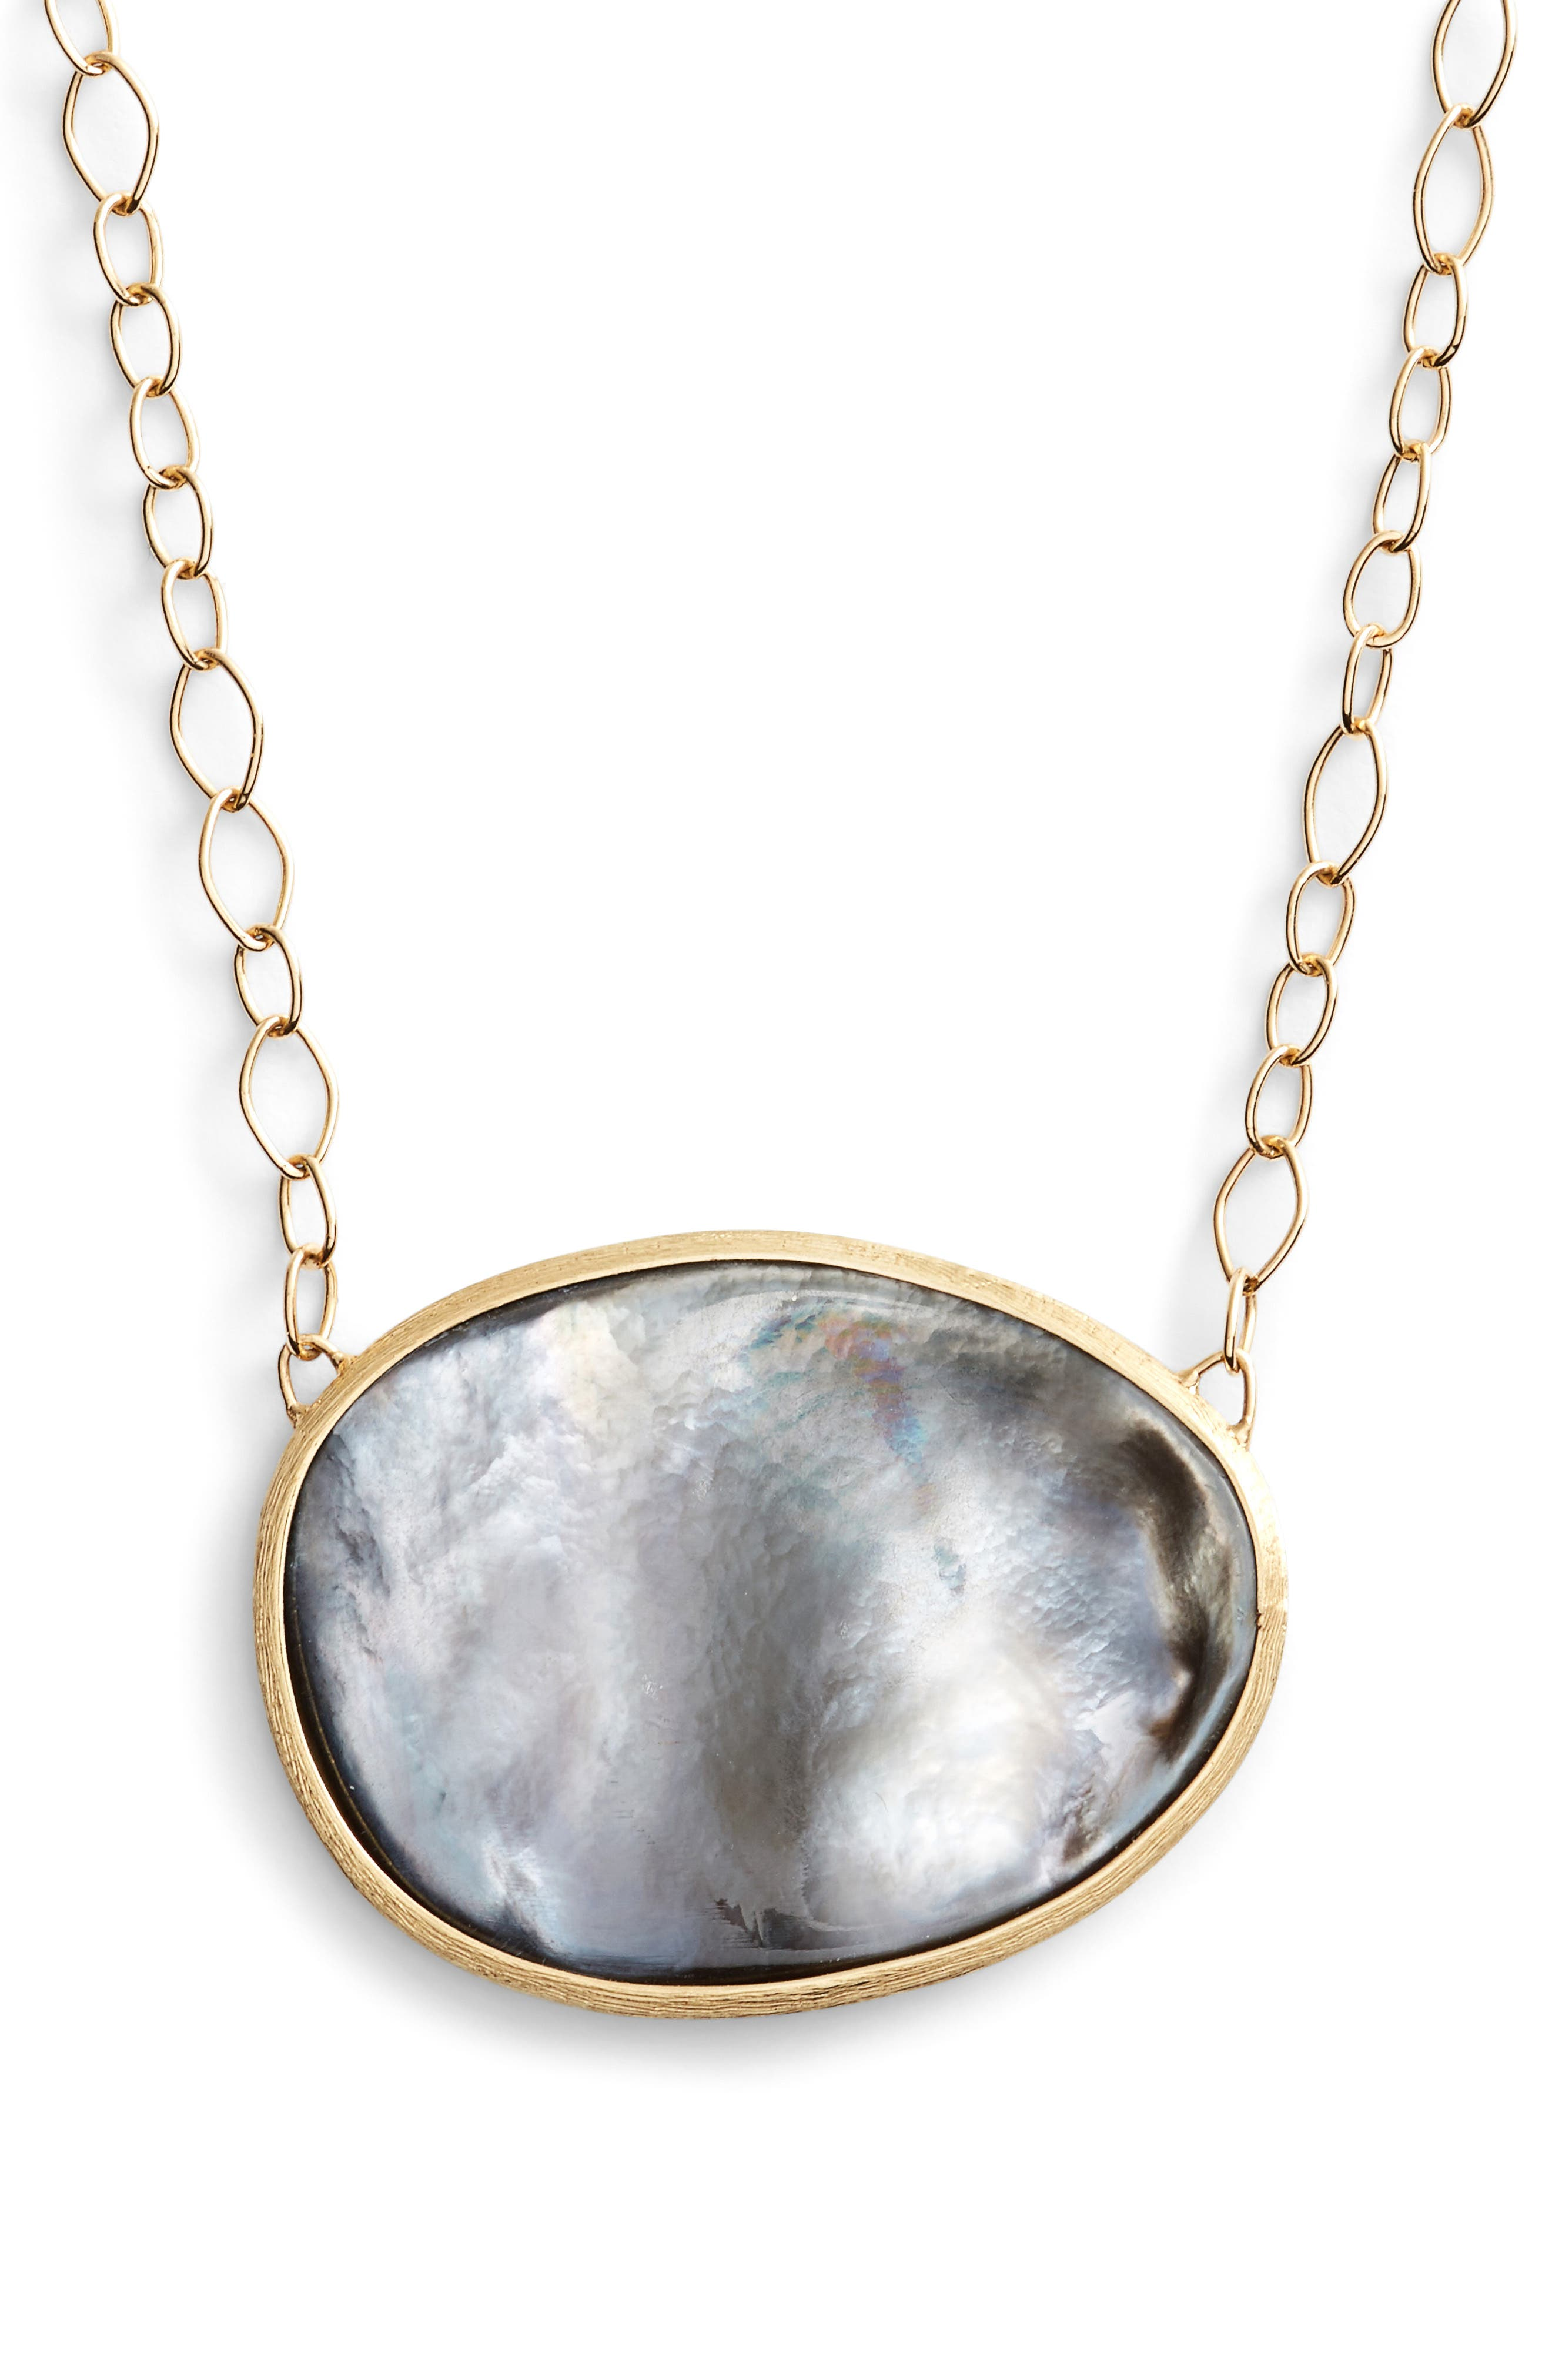 Lunaria Mother of Pearl Pendant Necklace,                         Main,                         color, GREY MOTHER OF PEARL